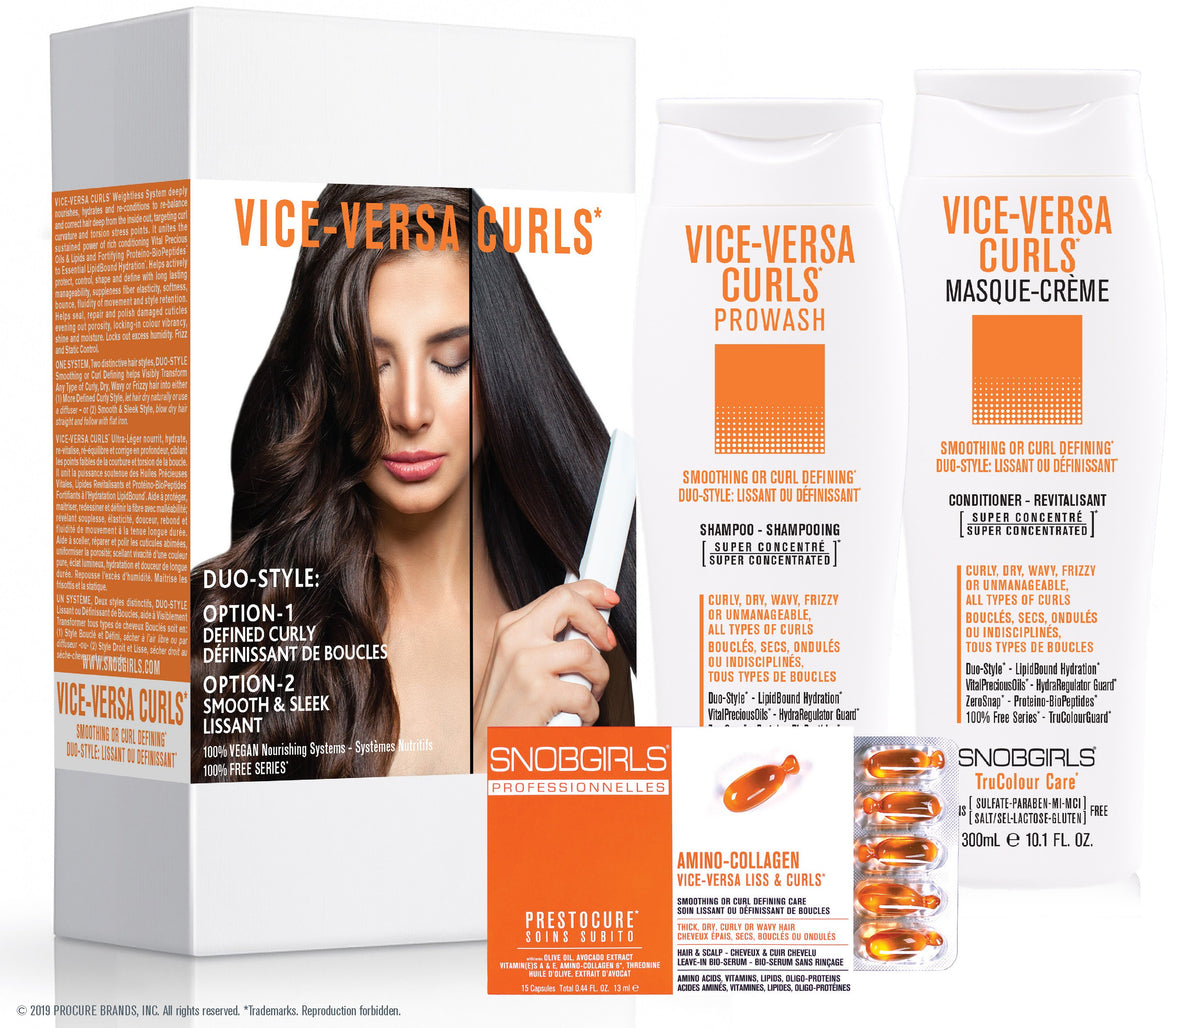 GIFT SETS- 6 X Trio VICE-VERSA CURLS Duo-Style: Smoothing or Curl Defining + Duo Liters - SNOBGIRLS.com